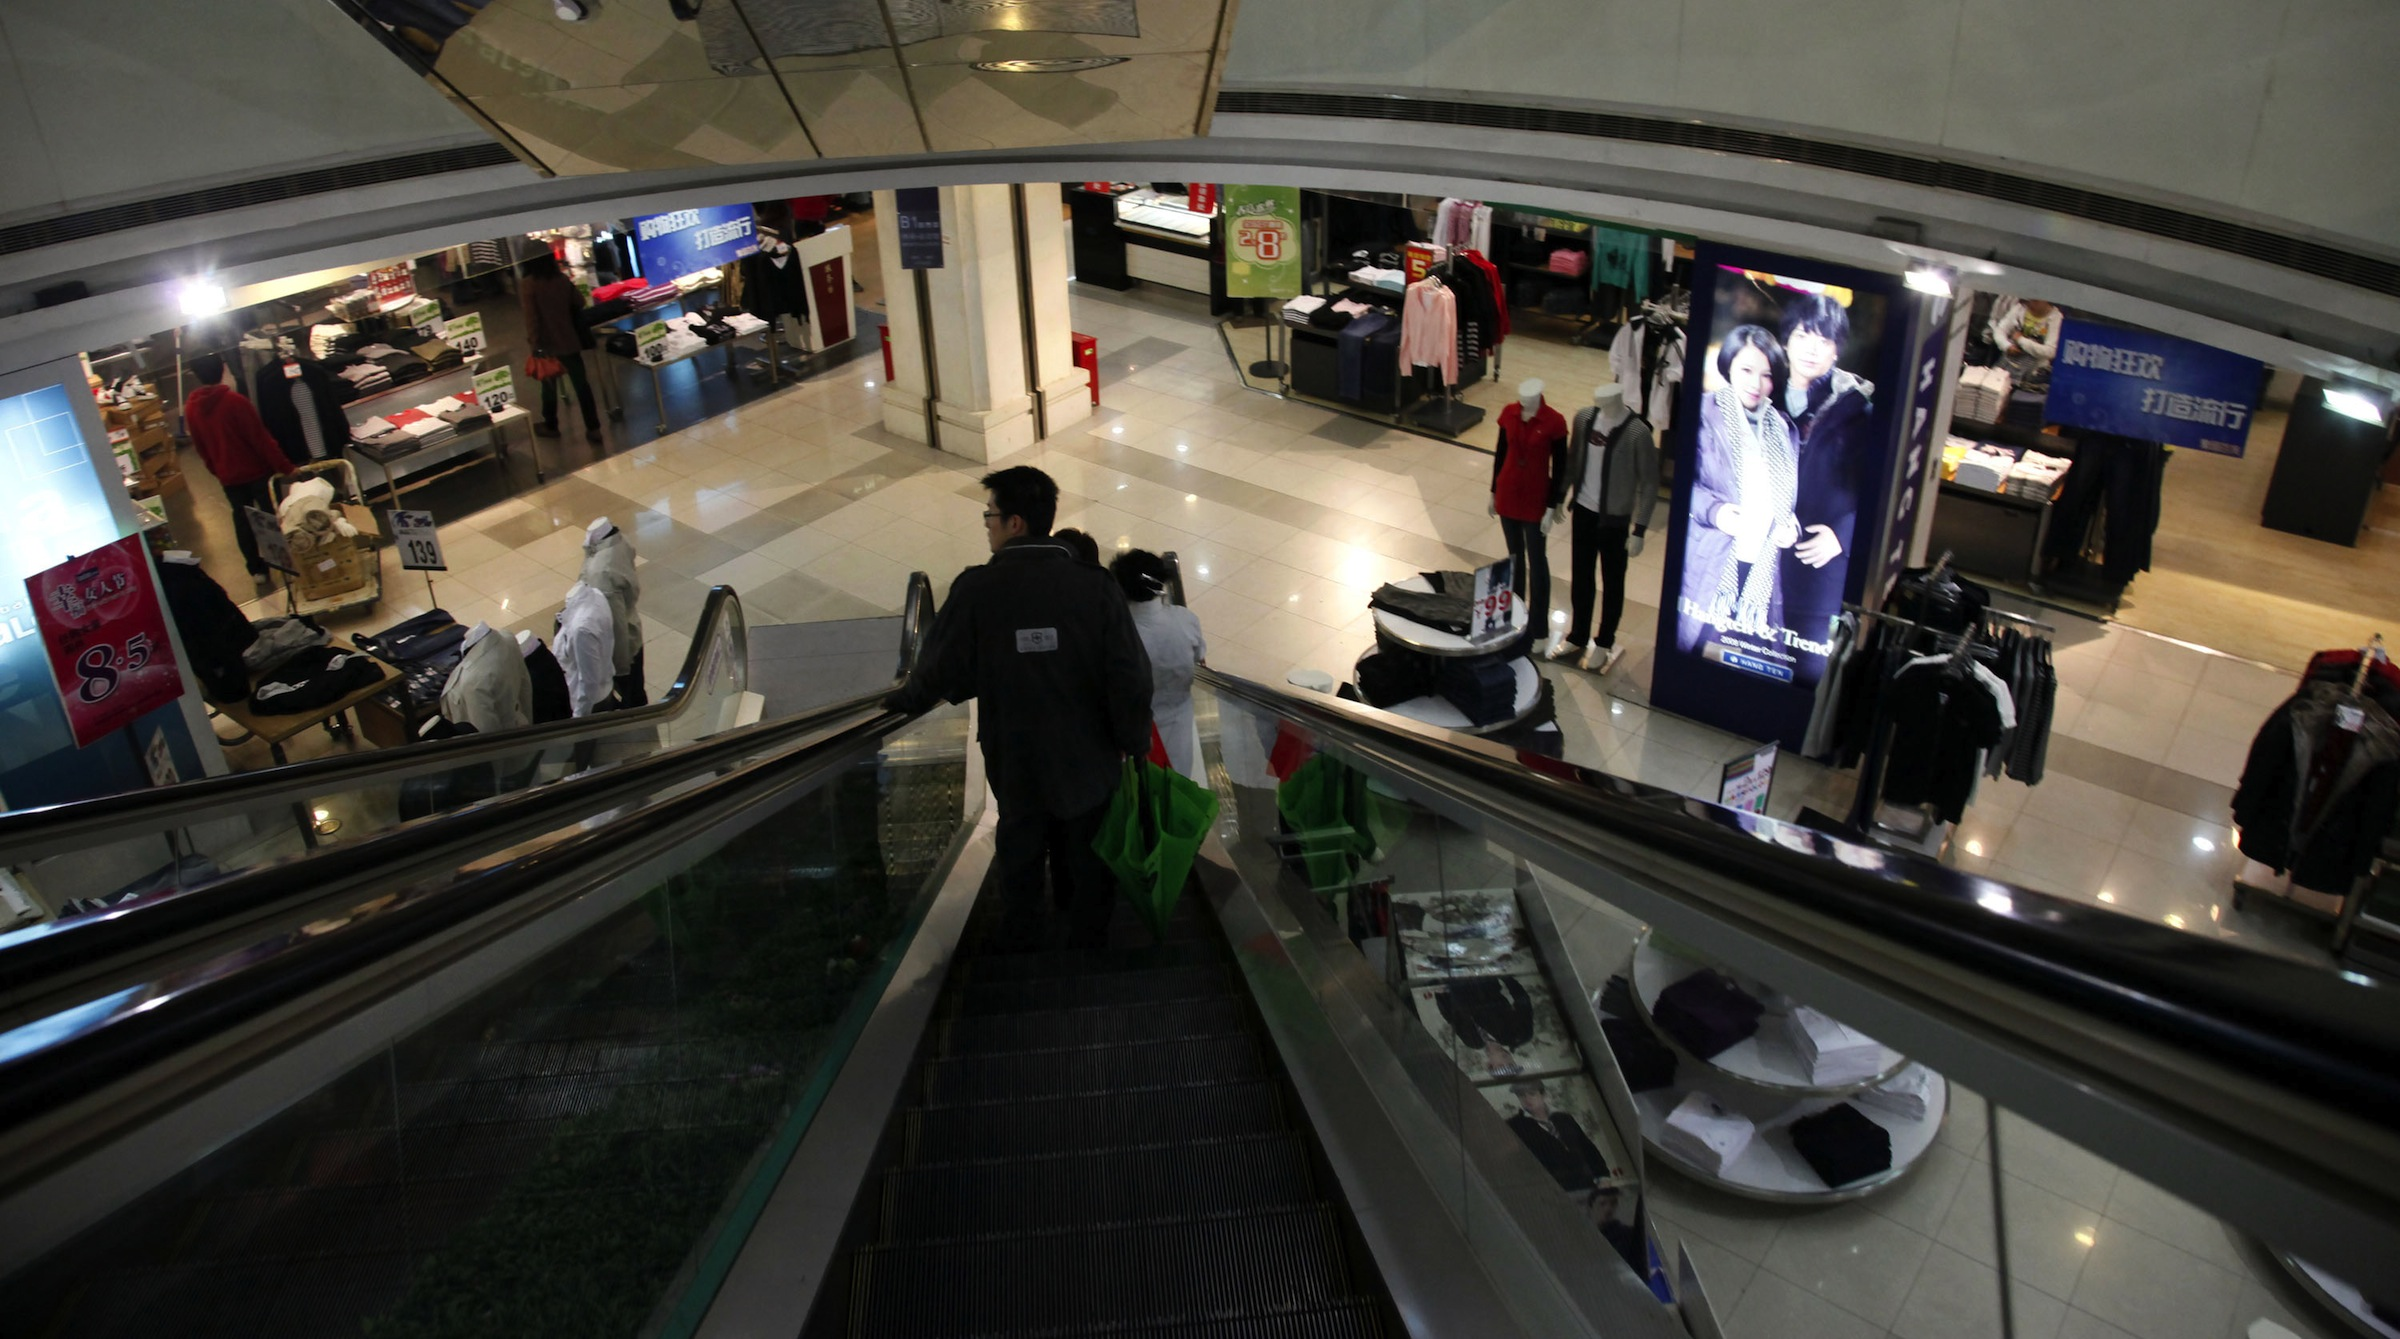 A couple of customers take the escalater to a rather empty shopping mall Friday March 13, 2009 in Shanghai, China. Chinese Premier Wen Jiabao stressed that a half-trillion-dollar stimulus program would revive the buoyant growth dragged down by the global downturn and create jobs and provide social welfare to cope with worsening unemployment. (AP photo/Eugene Hoshiko)